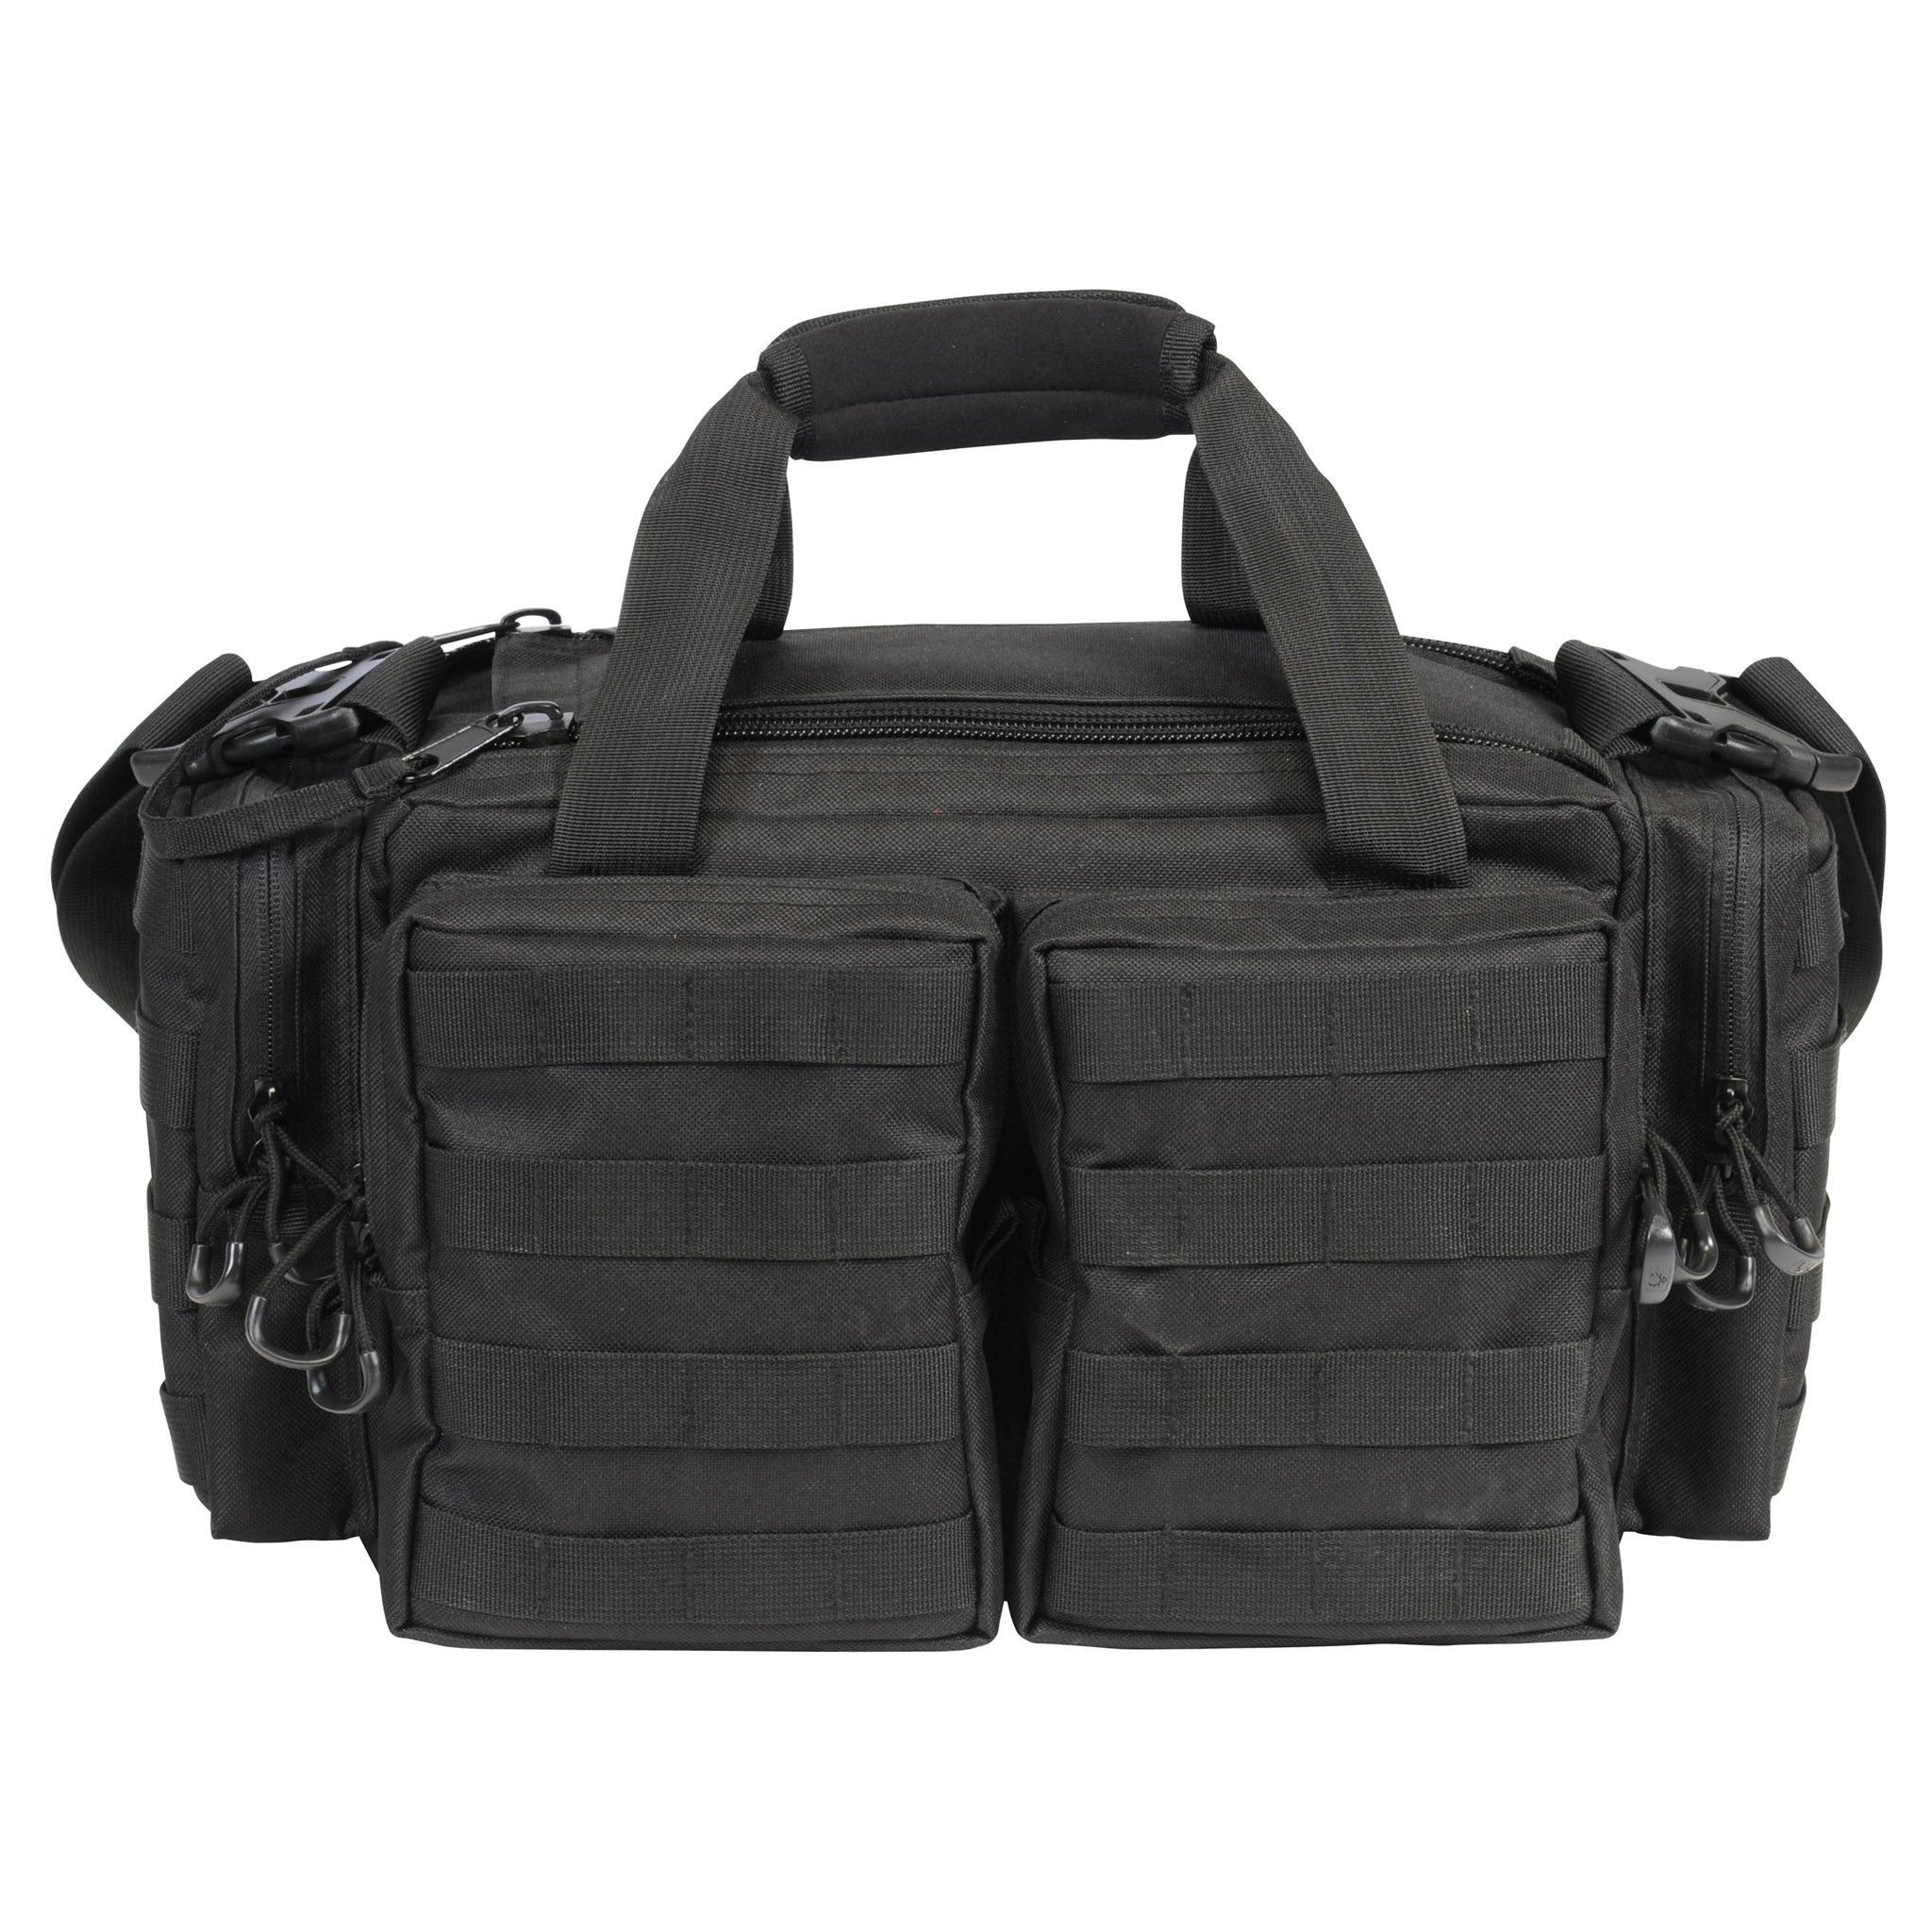 Tactical Range Bag - Medium